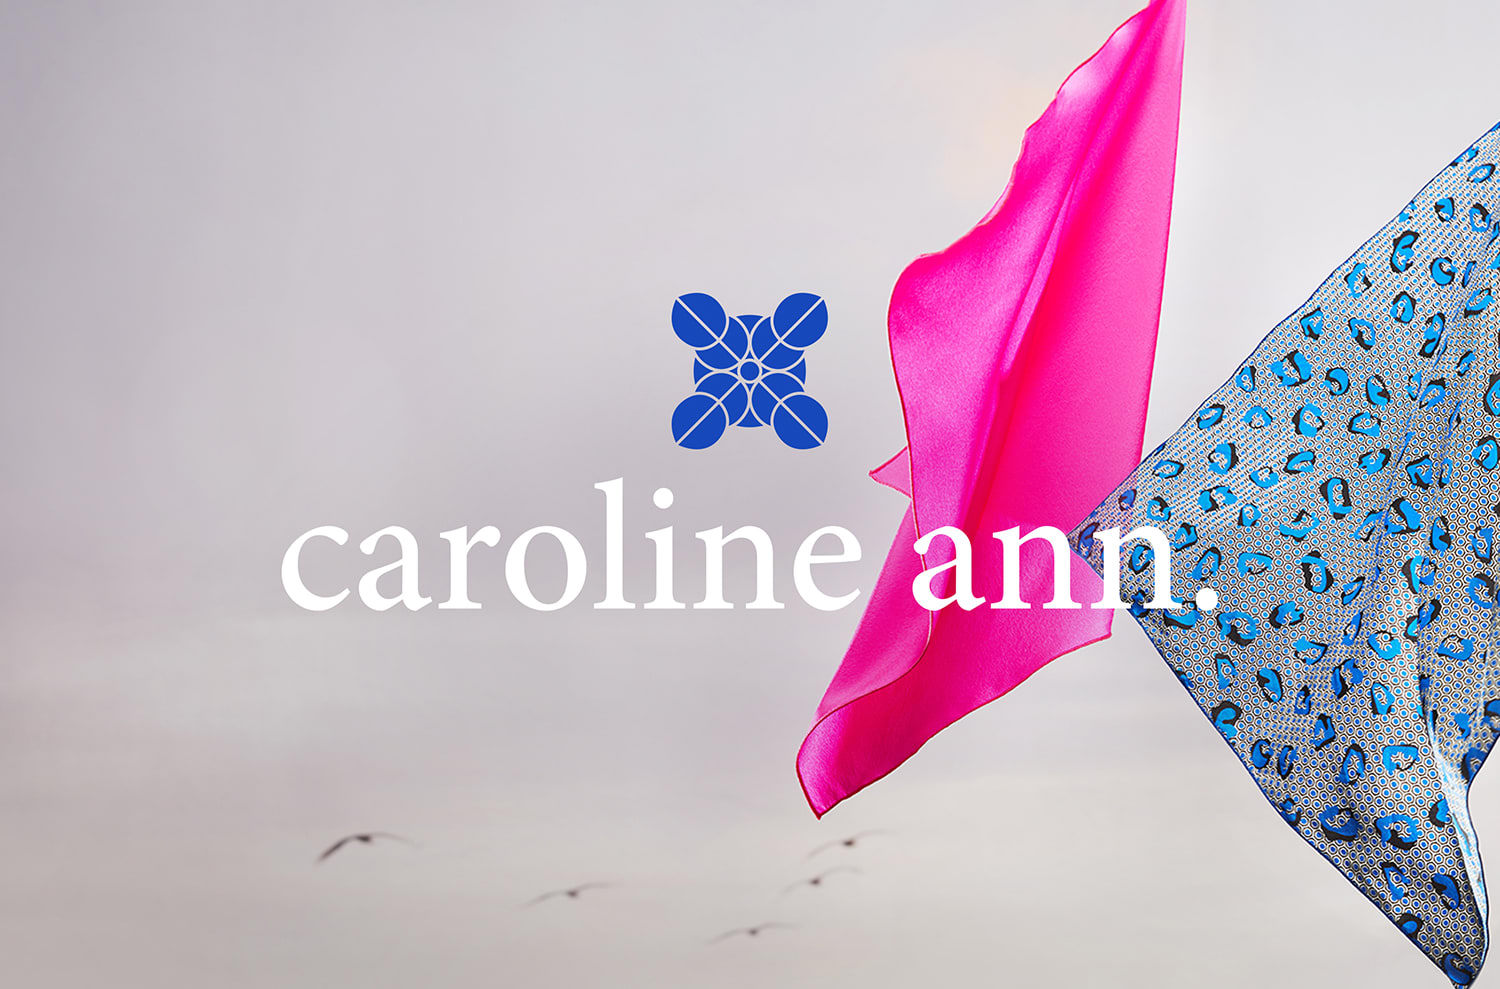 Caroline Ann. Branding, Web Design & Packaging